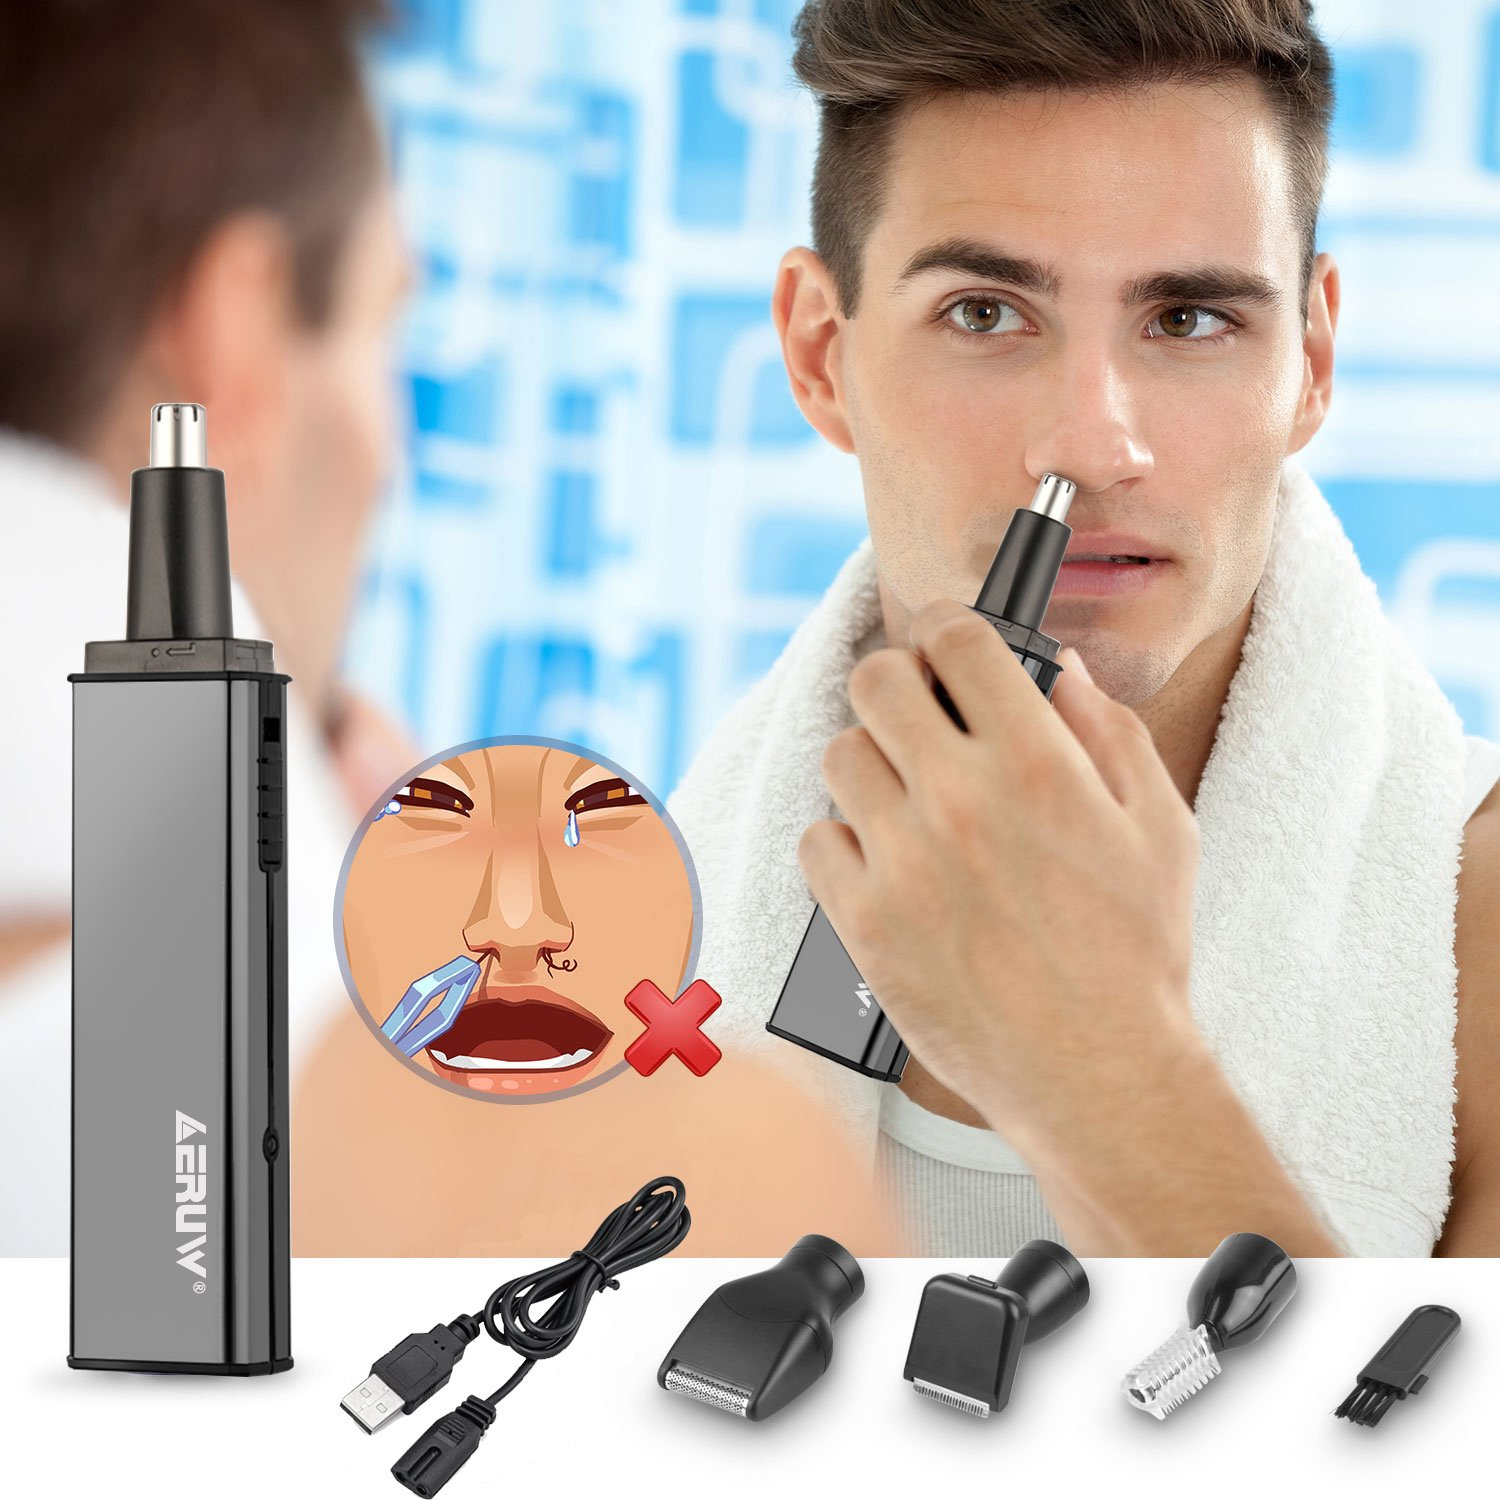 Nose Hair Trimmer, 4 in 1 USB Rechargeable Waterproof Nose Ear Hair Trimmer/ Beard Trimmer/ Sideburns Trimmer/ Eyebrow Trimmer for Grooming Cleaning Stainless Steel Rotation Blades Facial Beauty Tools